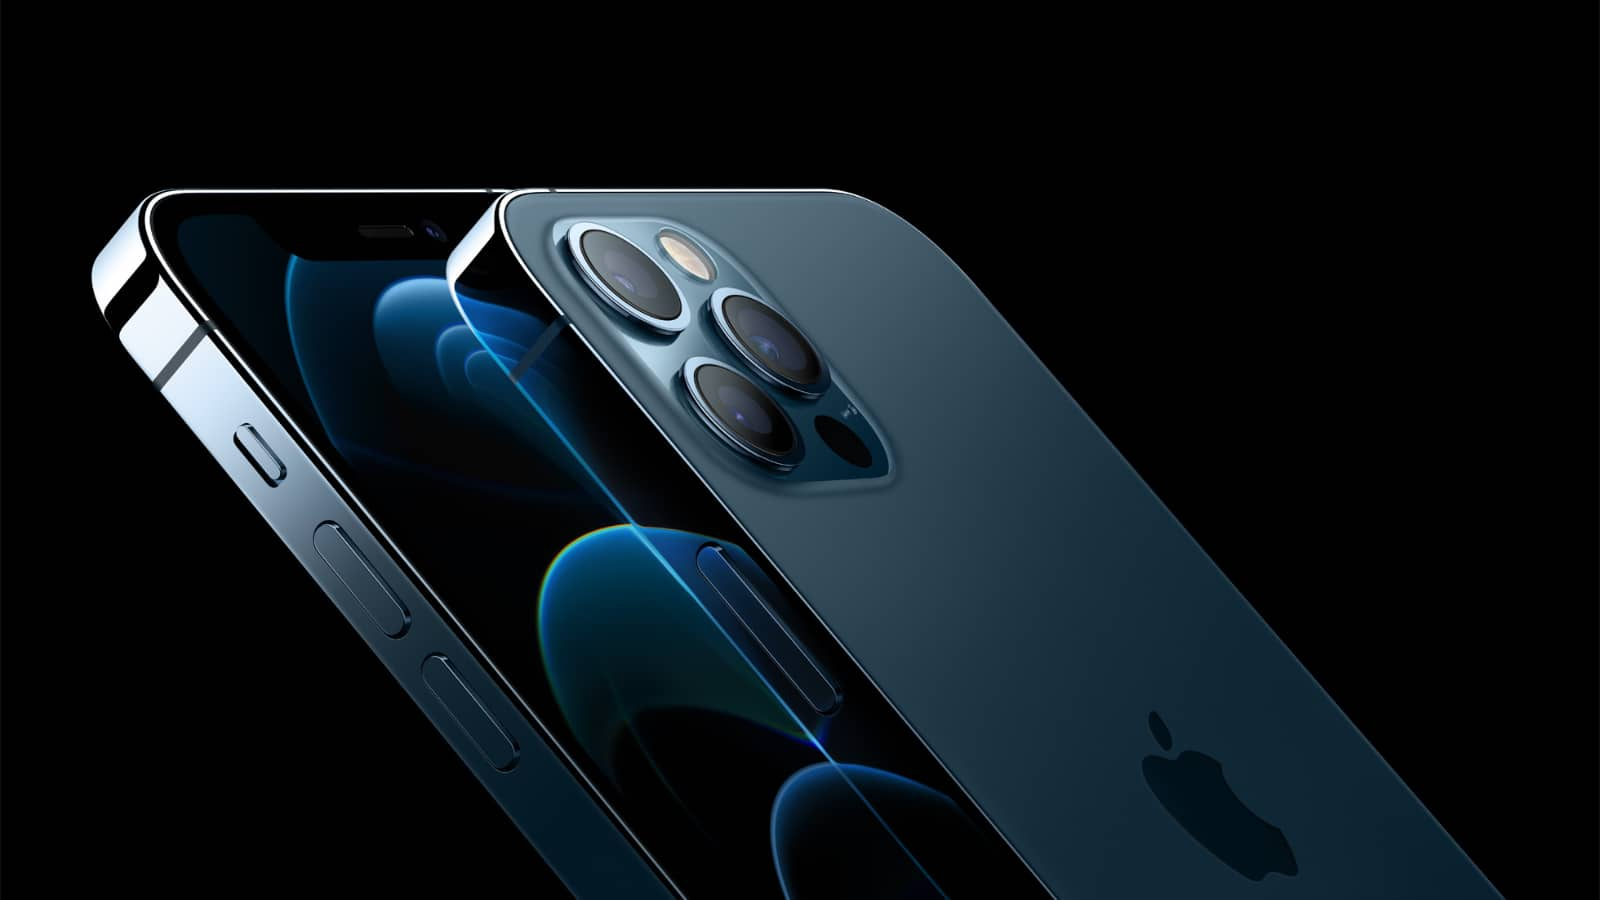 foto: Apple iPhone 12 pro